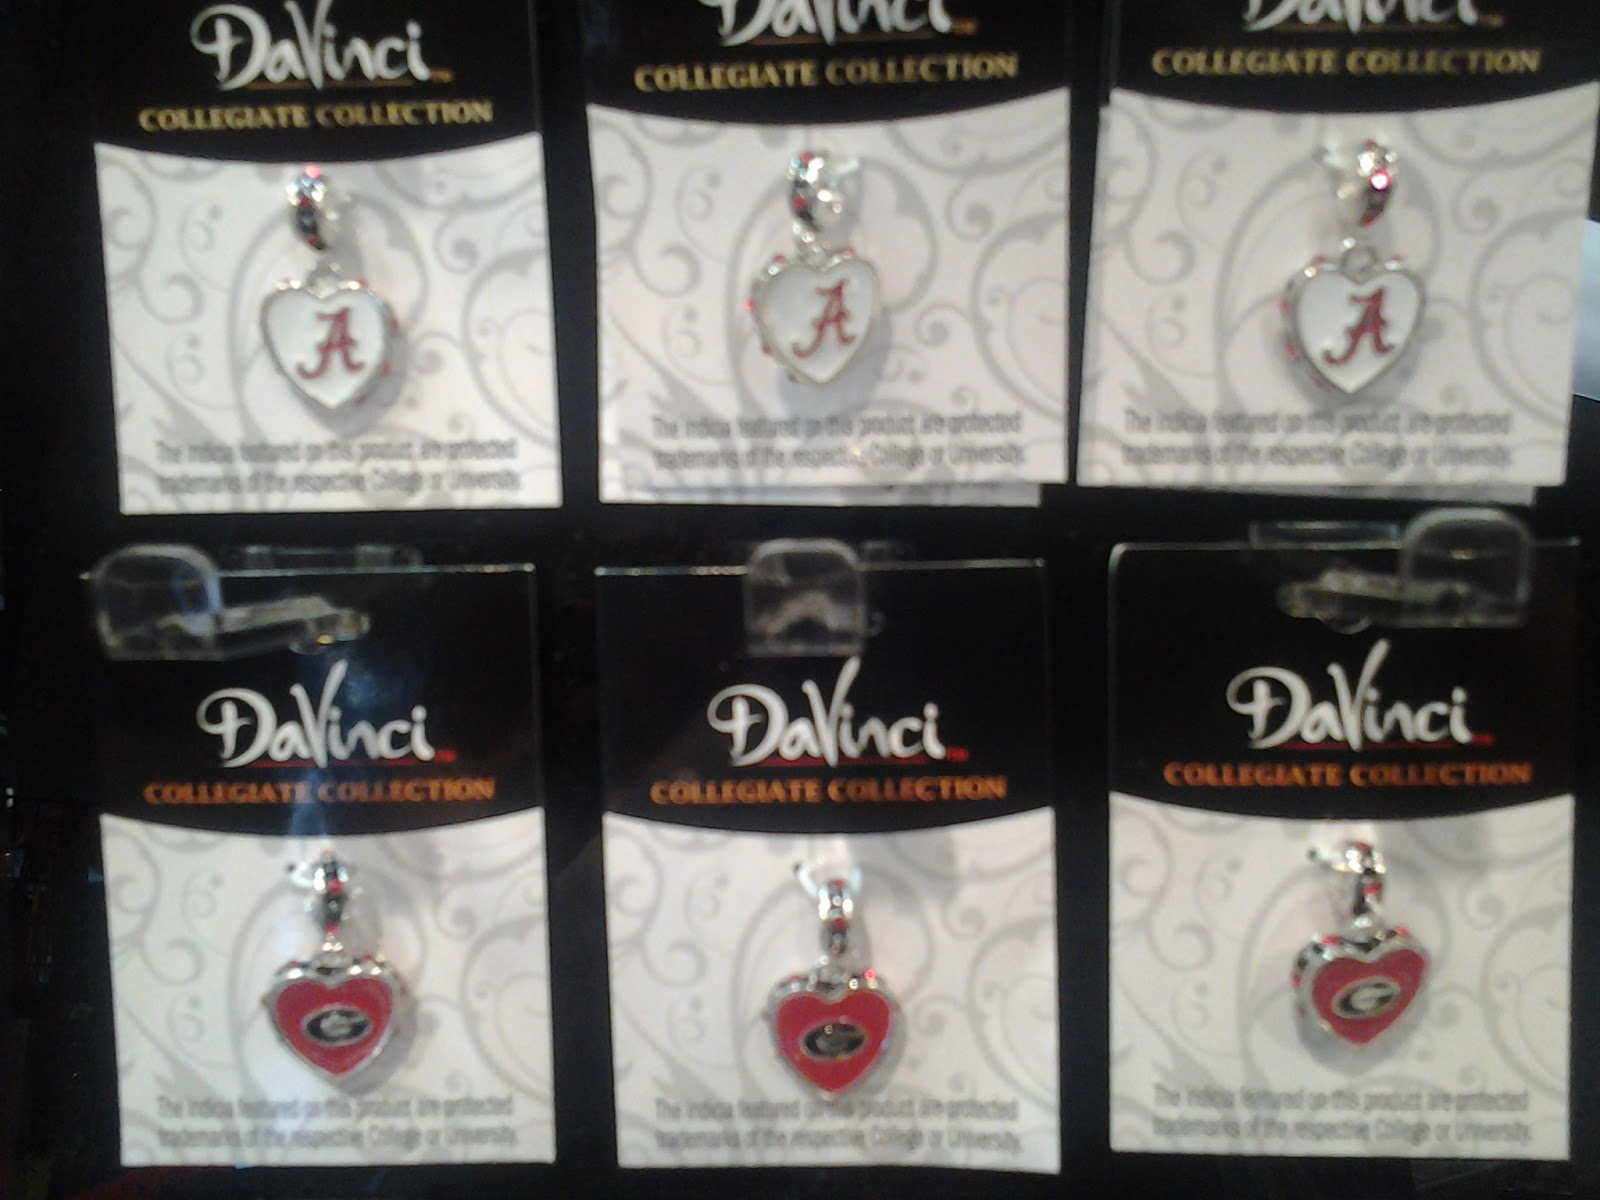 Davinci charms bracelet - College Football Season Is Coming Up Soon And You Ll Want To Be Ready To Show Team Spirit What Better Way To Do So Than With A Da Vinci Charm Bracelet Or